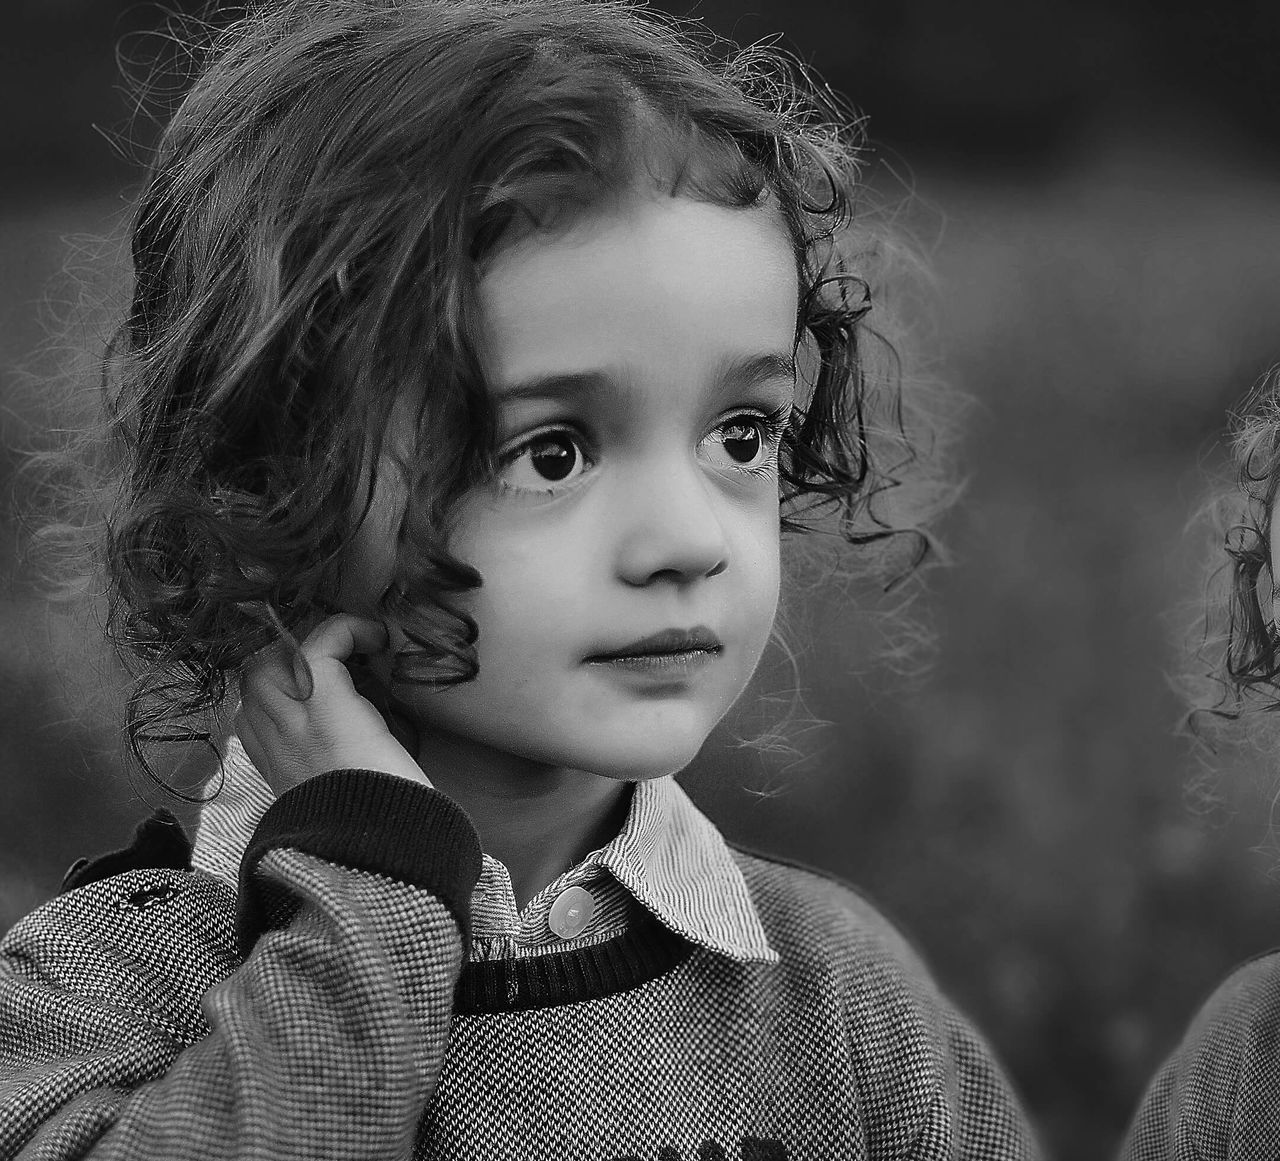 childhood, elementary age, girls, real people, innocence, headshot, child, one person, close-up, boys, focus on foreground, outdoors, day, children only, lifestyles, portrait, people